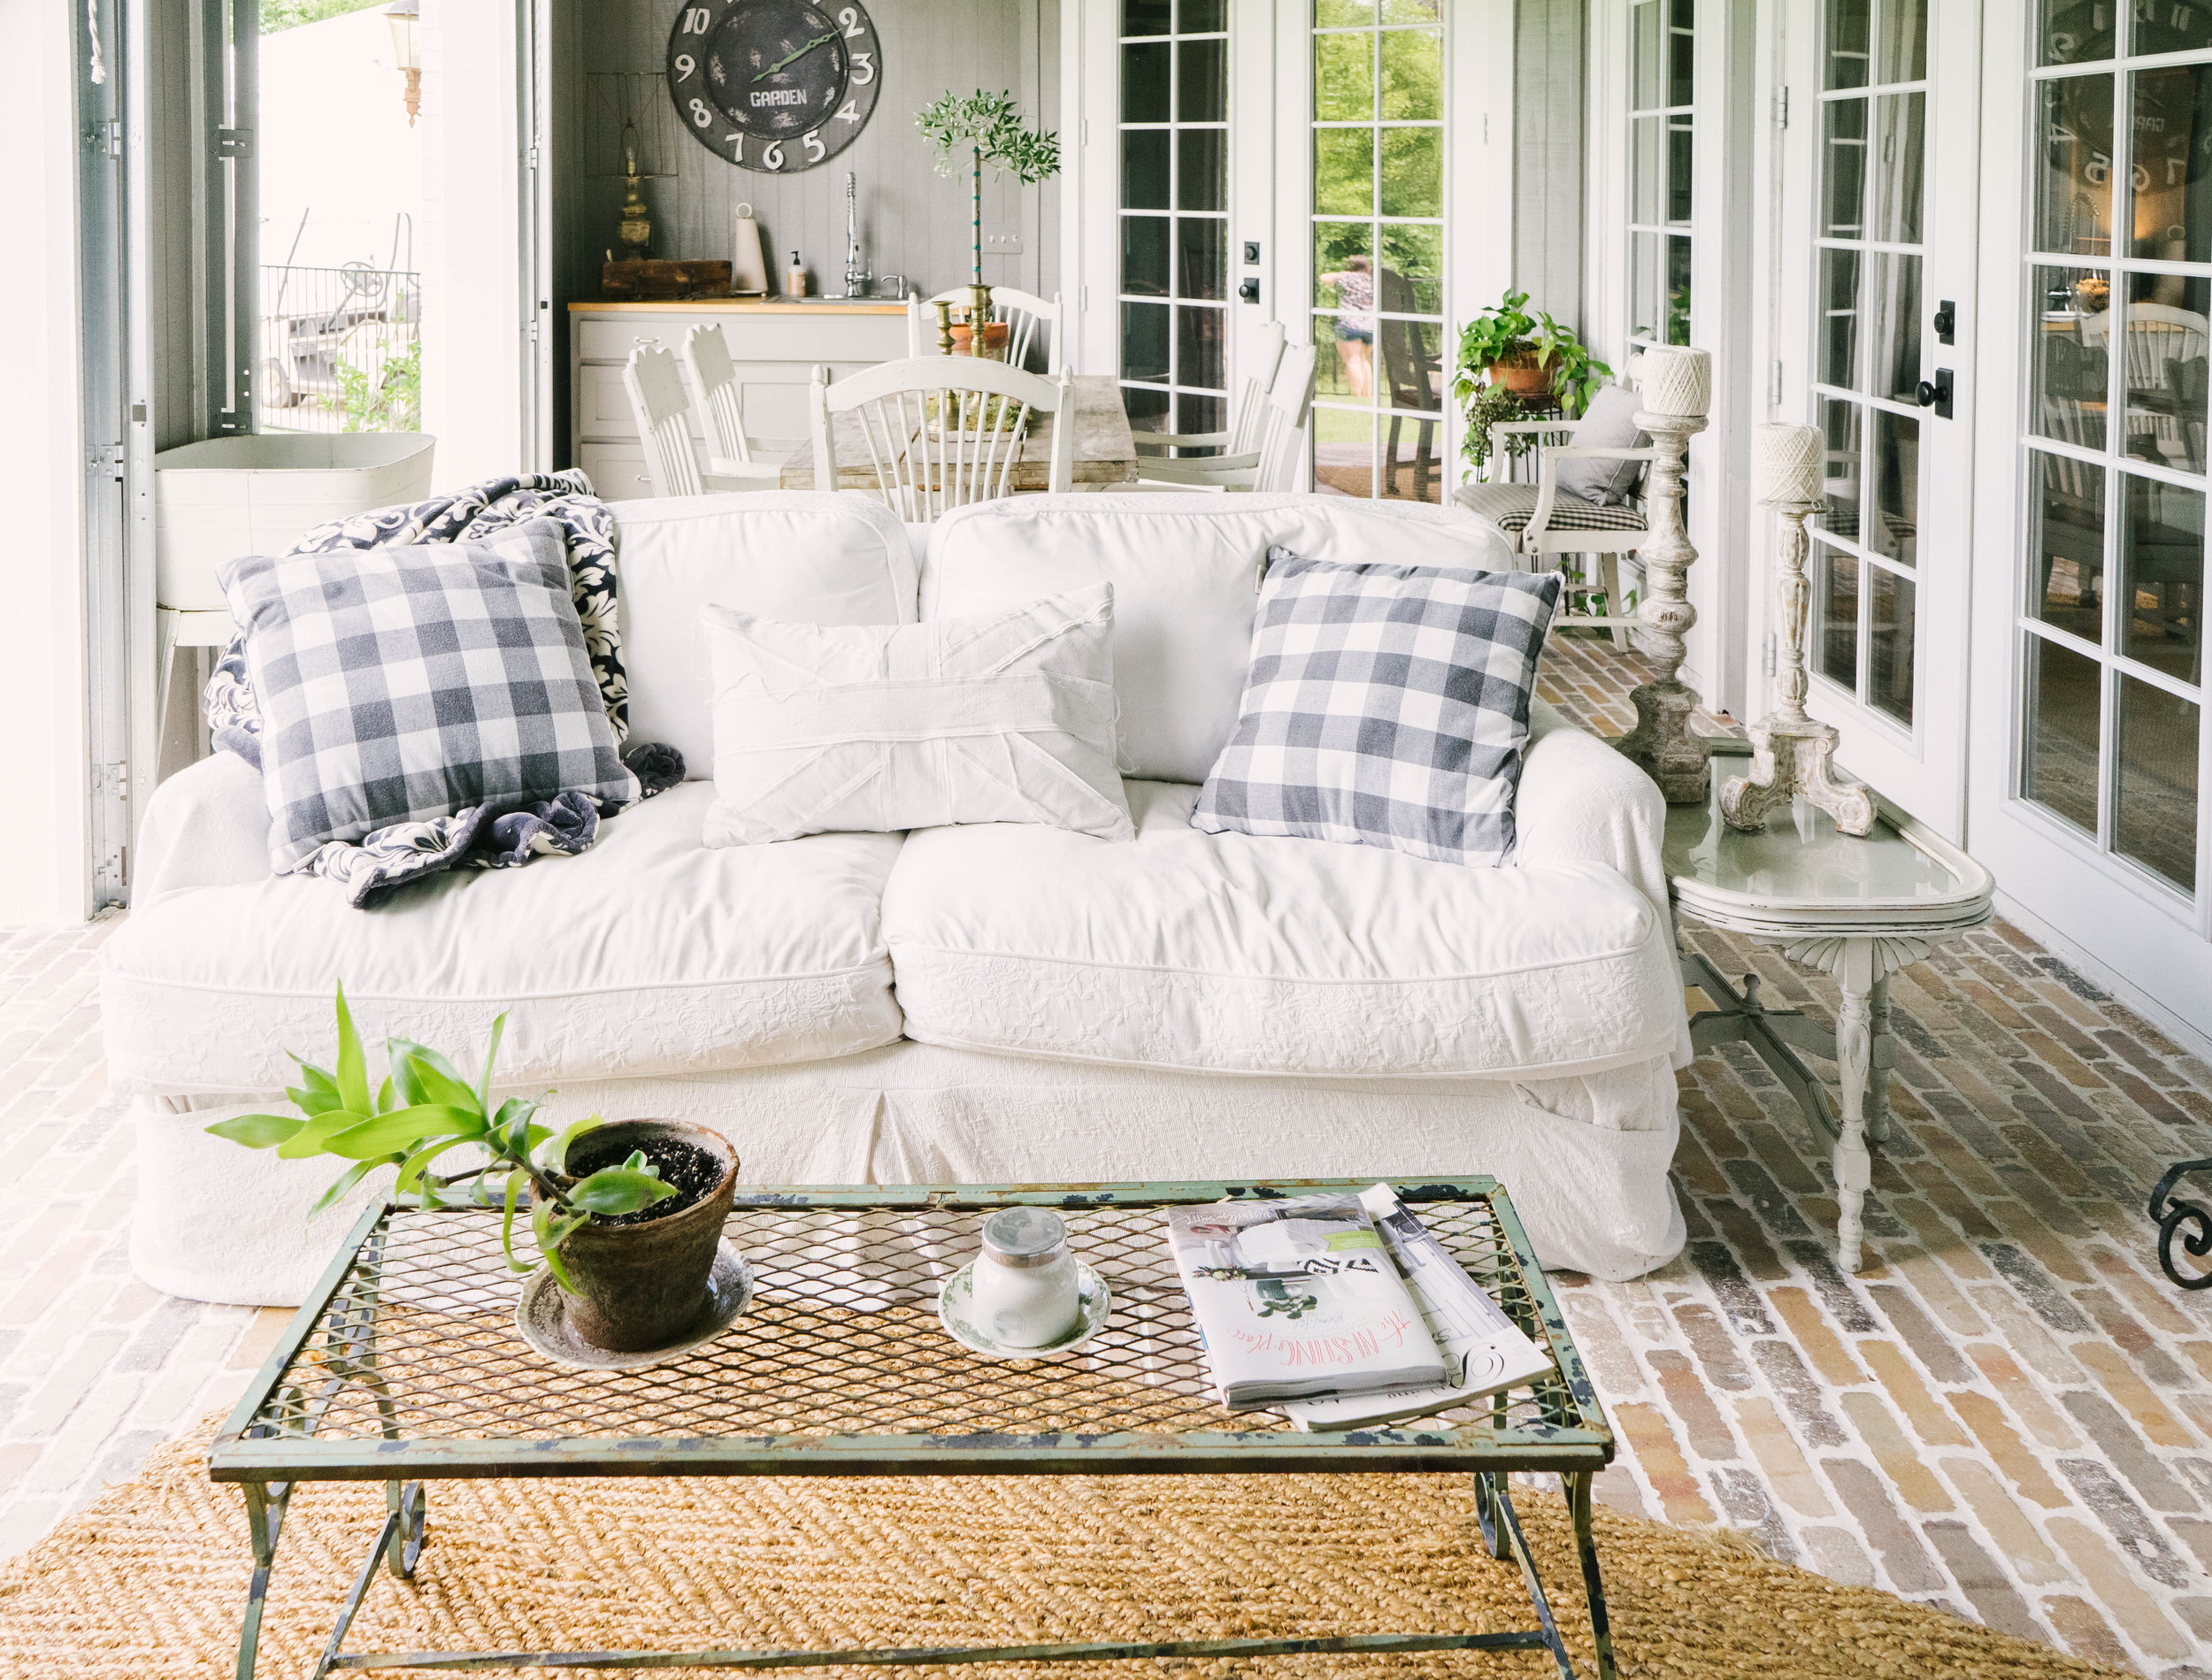 Farmhouse Home Tour - Vintage Home 54.jpg